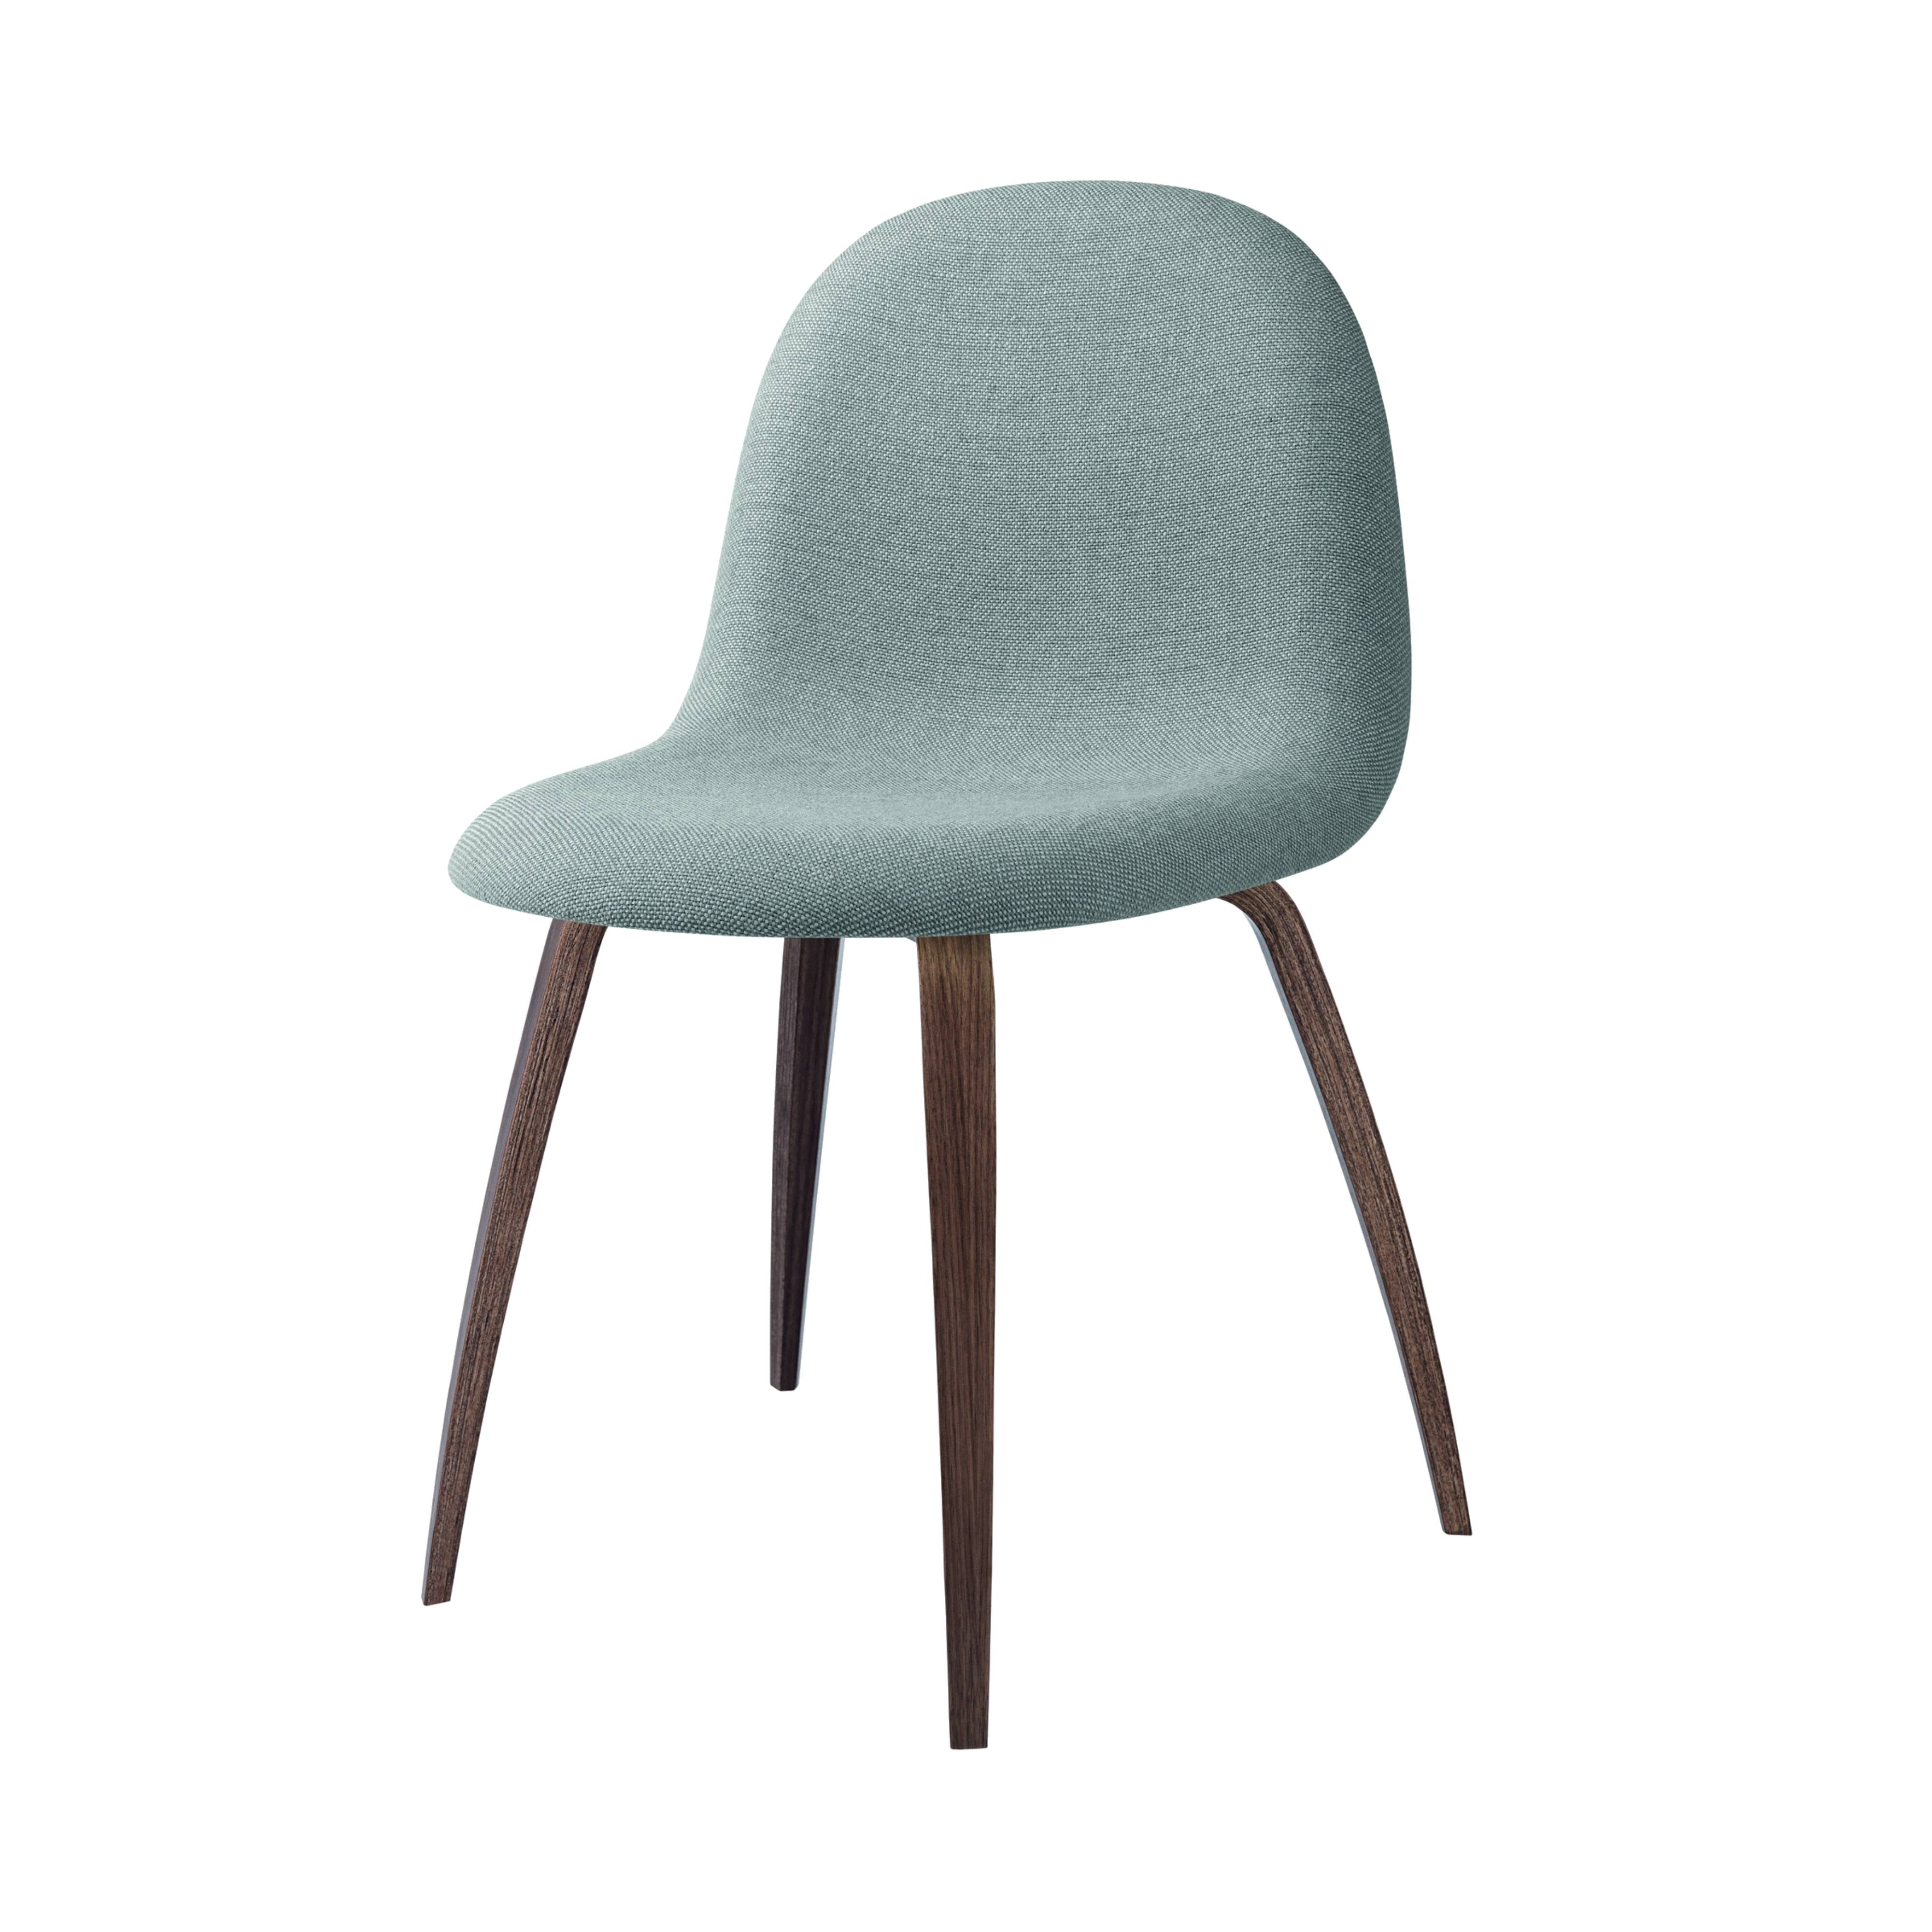 3D Dining Chair: Wood Base + Full Upholstery: American Walnut